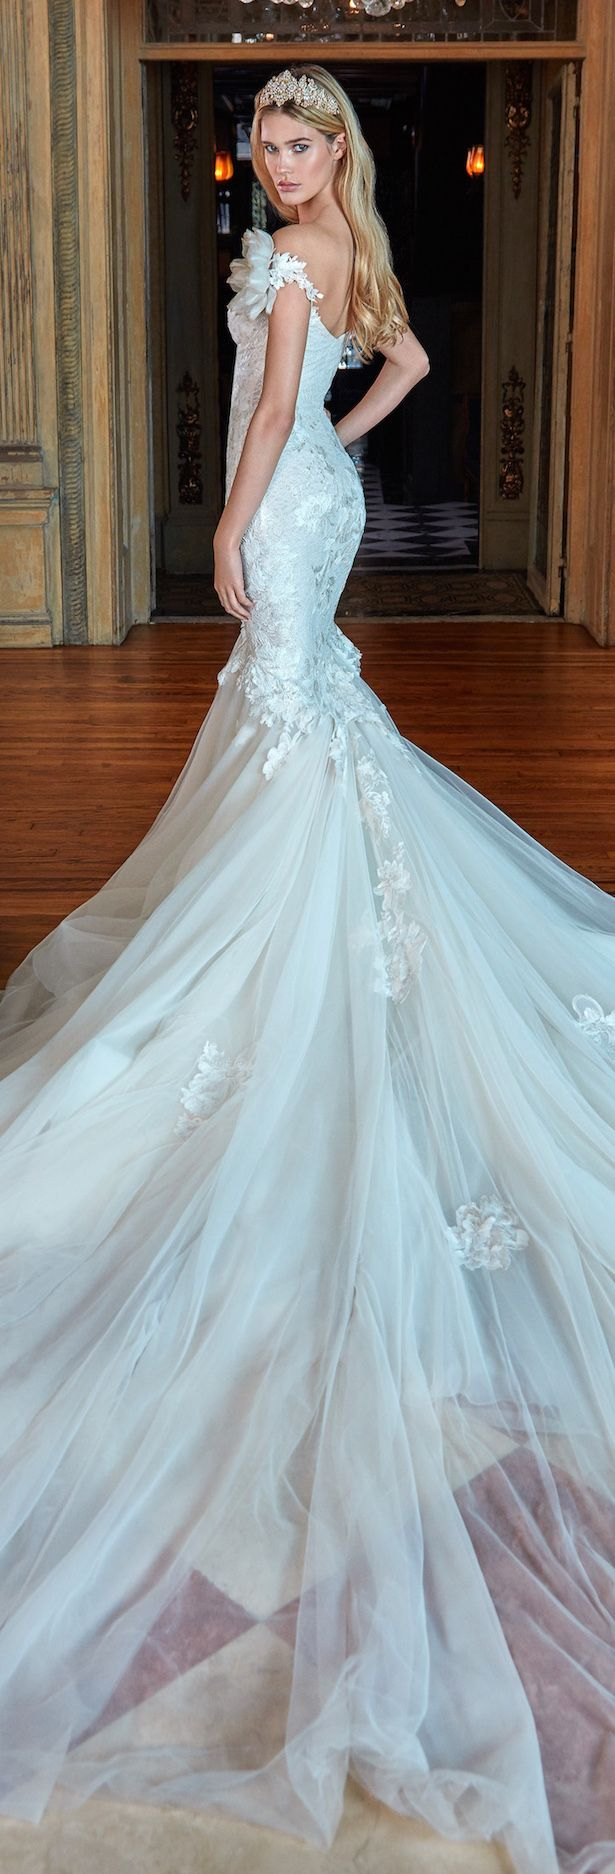 Awesome Wedding Dress From Princess Diaries 2 Ornament - Wedding ...